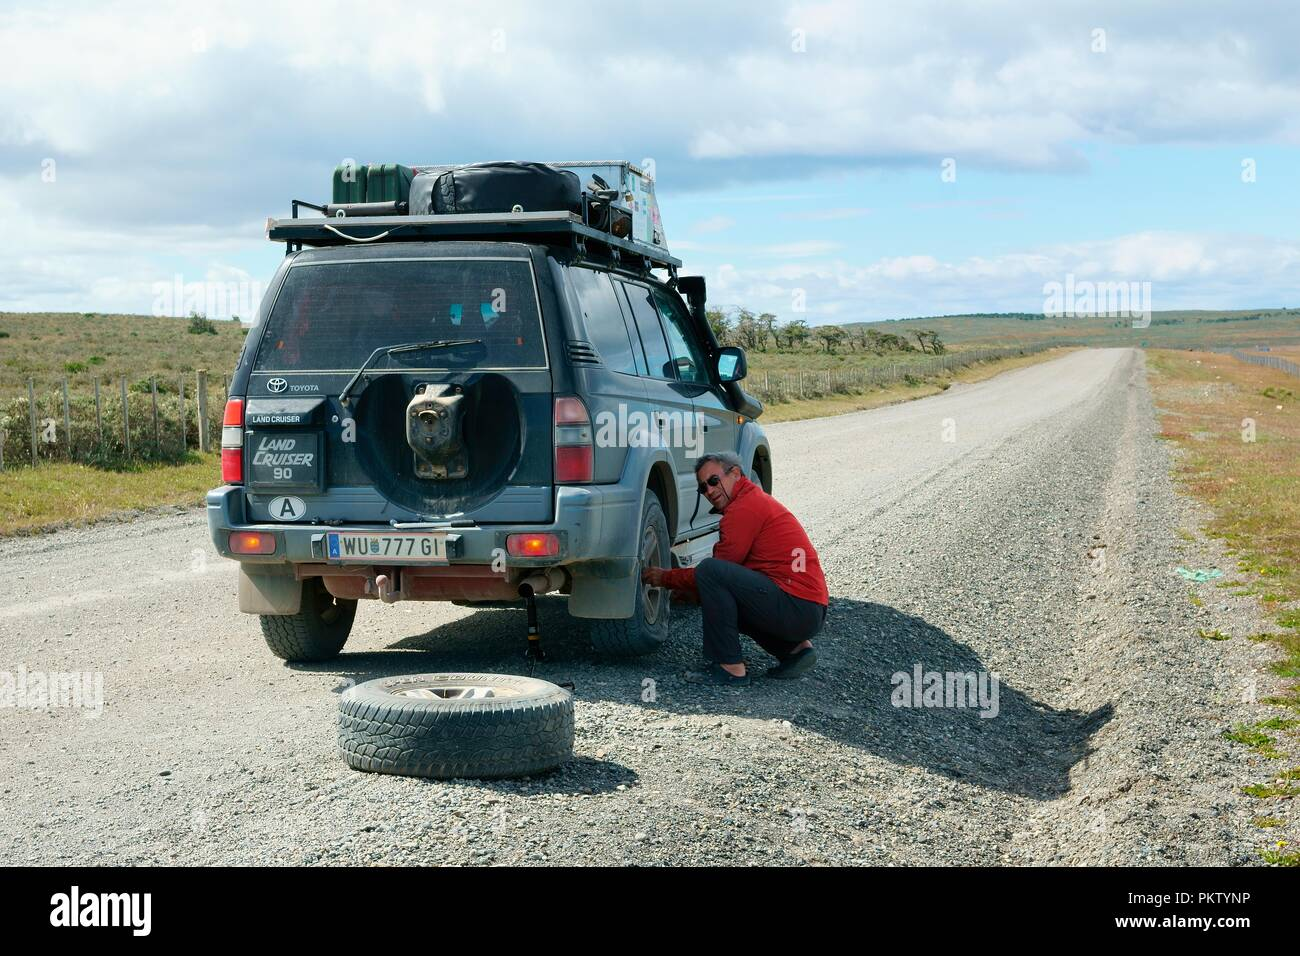 Tire damage on a SUV on the Y50 near Rio Verde, Magallanes, Patagonia, Chile - Stock Image